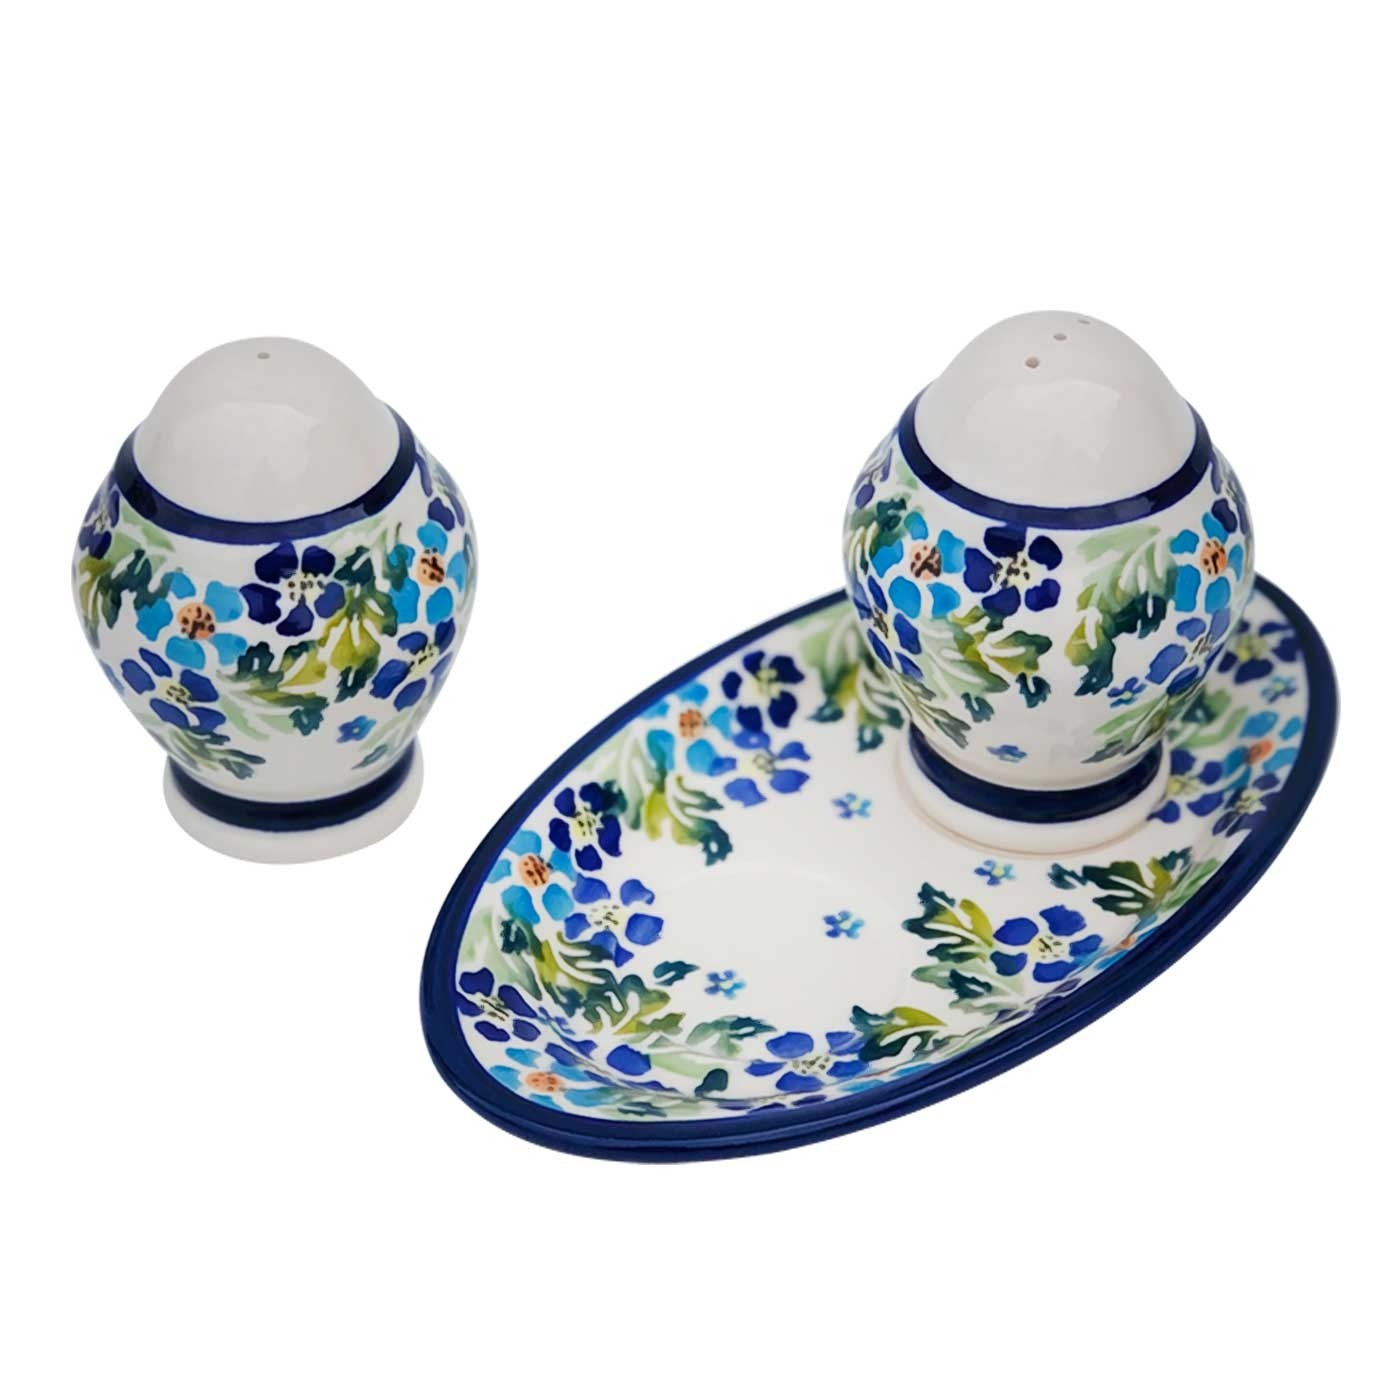 Pottery Avenue True Blues 3pc Stoneware Salt and Pepper with Tray - 1284-961-DU207